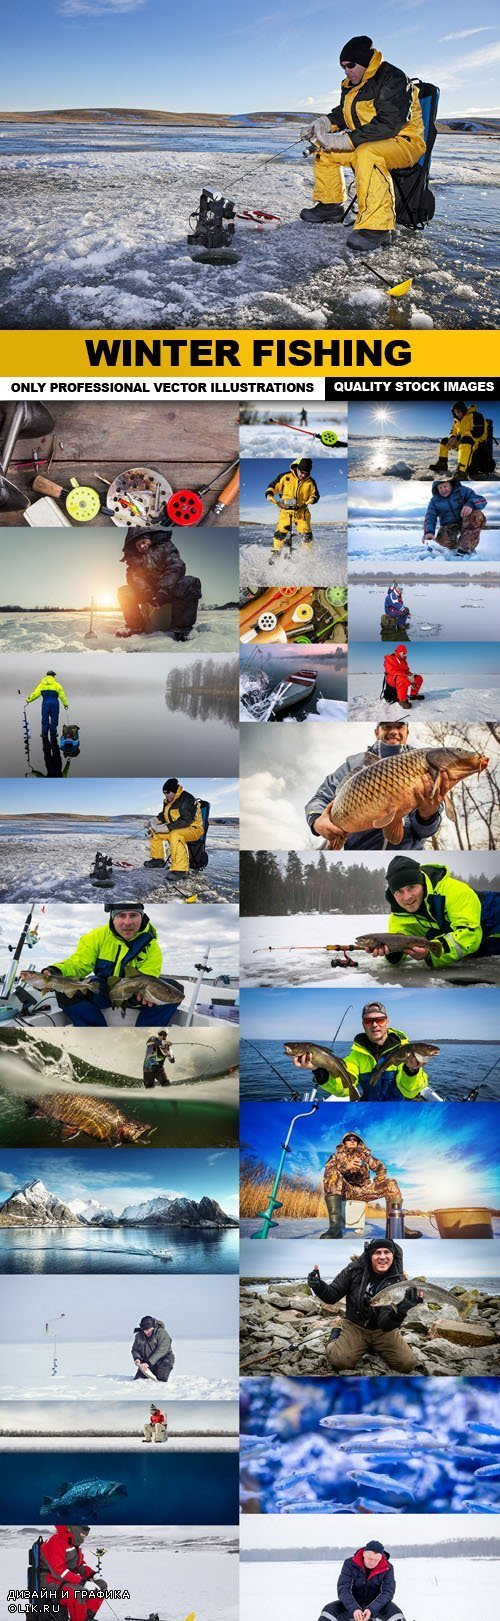 Winter Fishing - 25 HQ Images